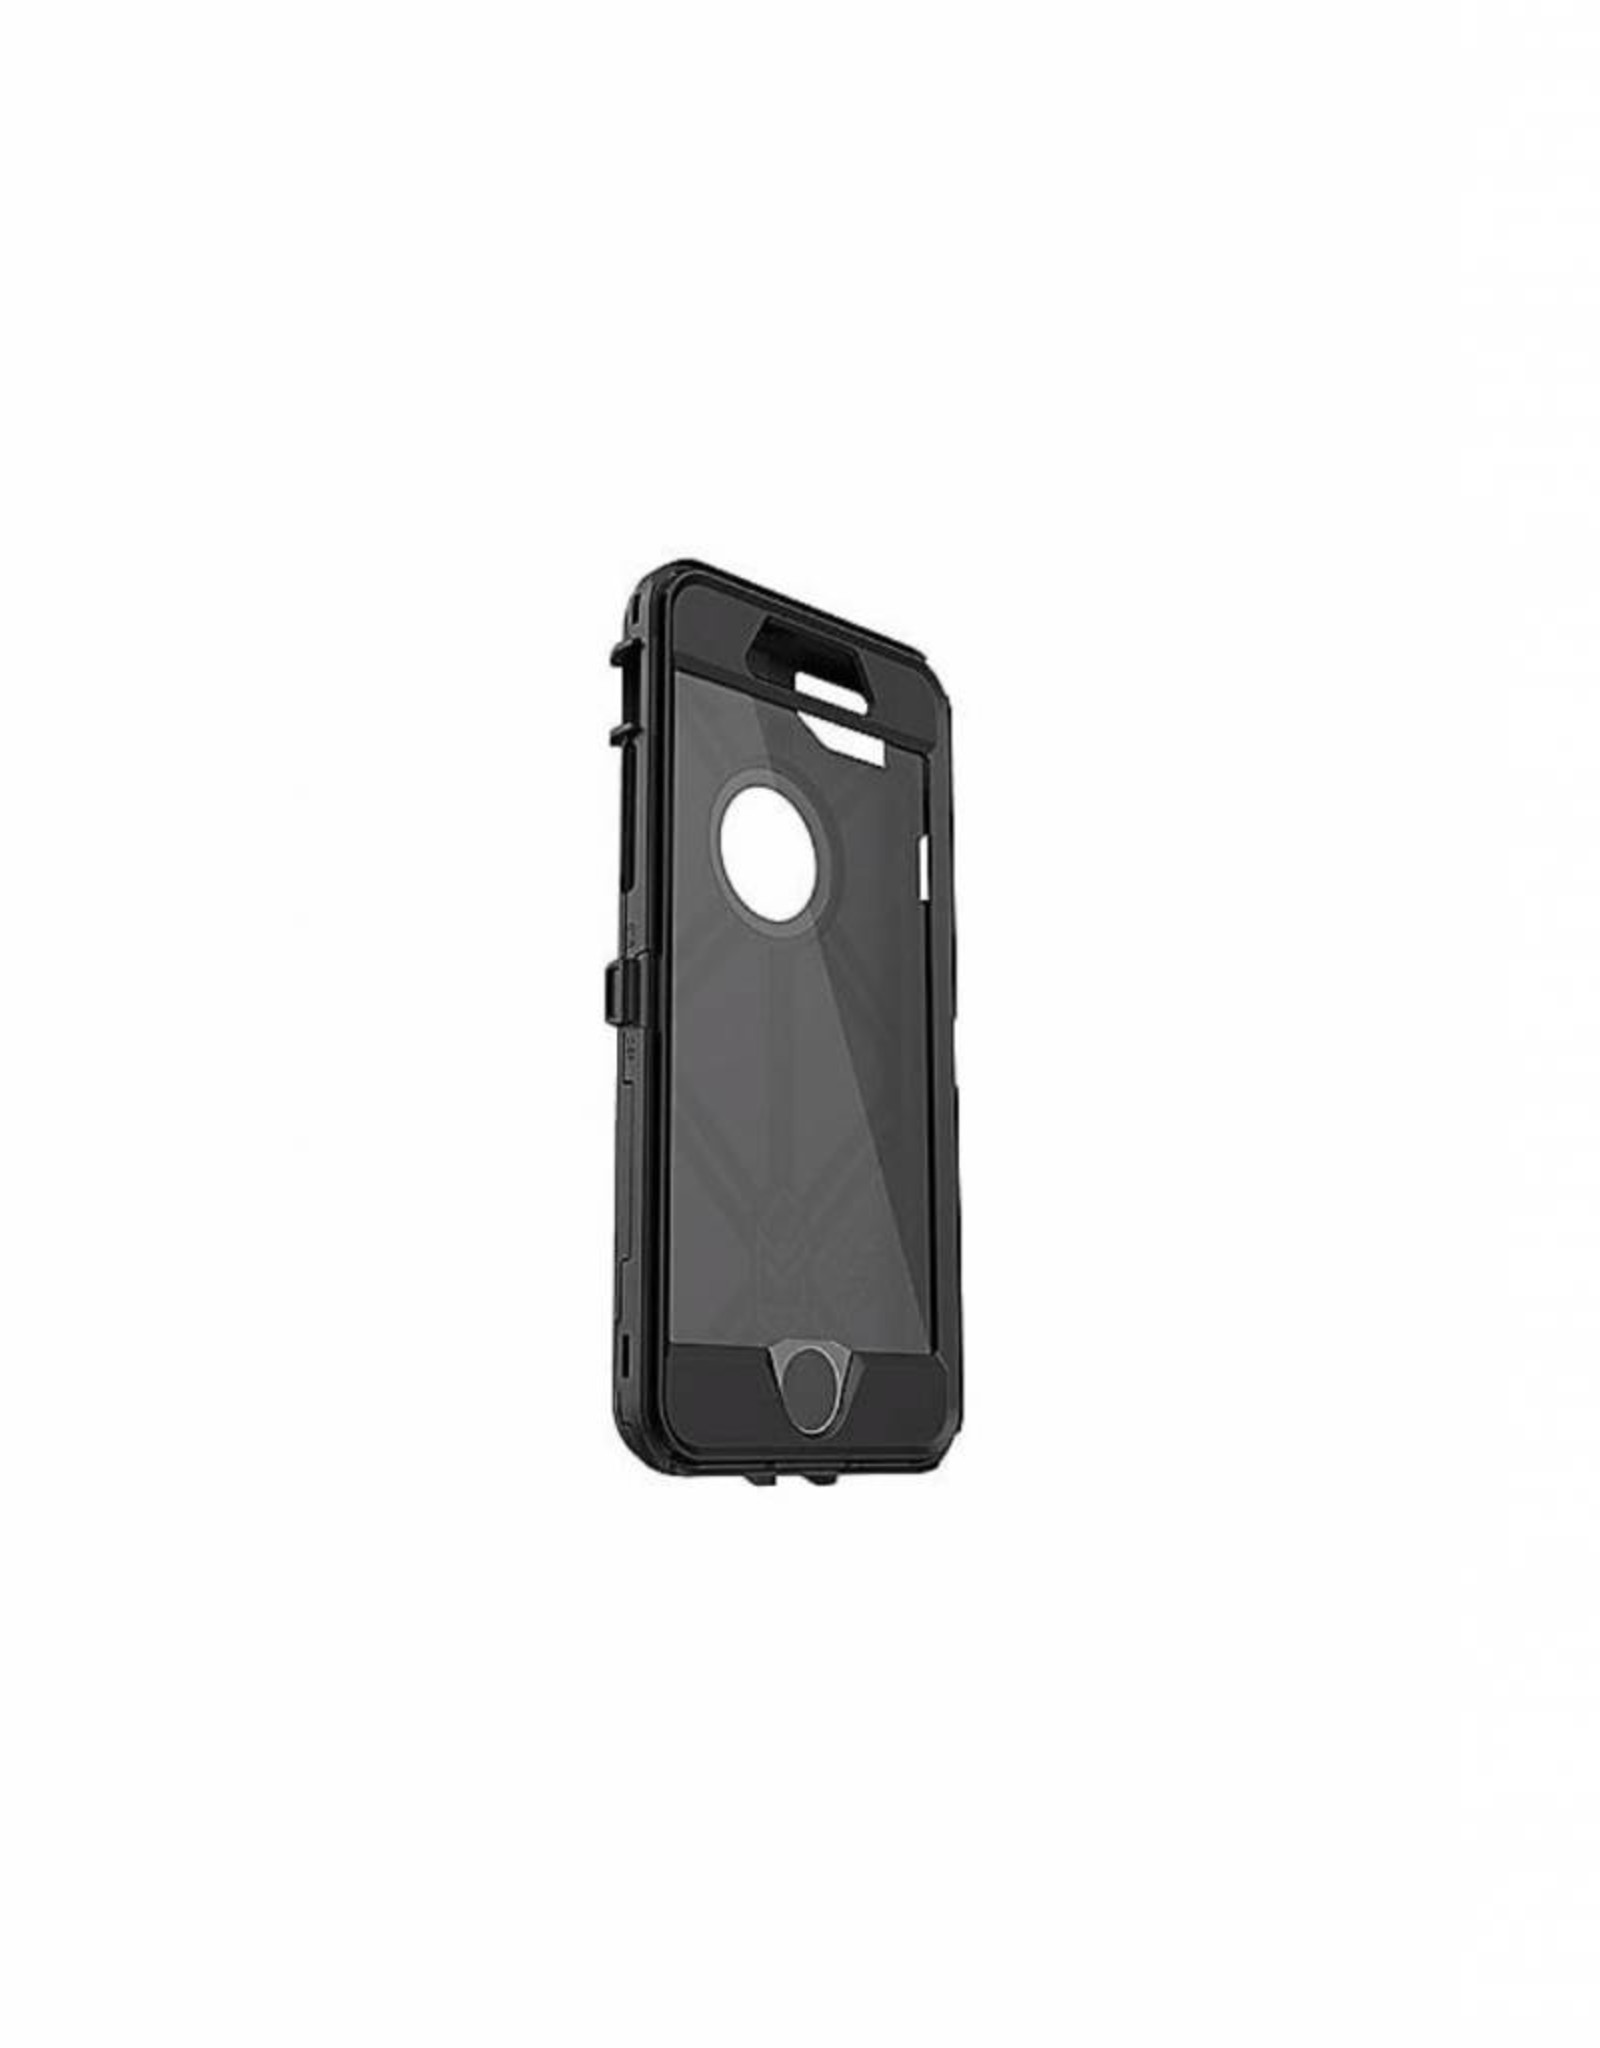 OTTERBOX OTTERBOX DEFENDER CASE (IPHONE 7/8)